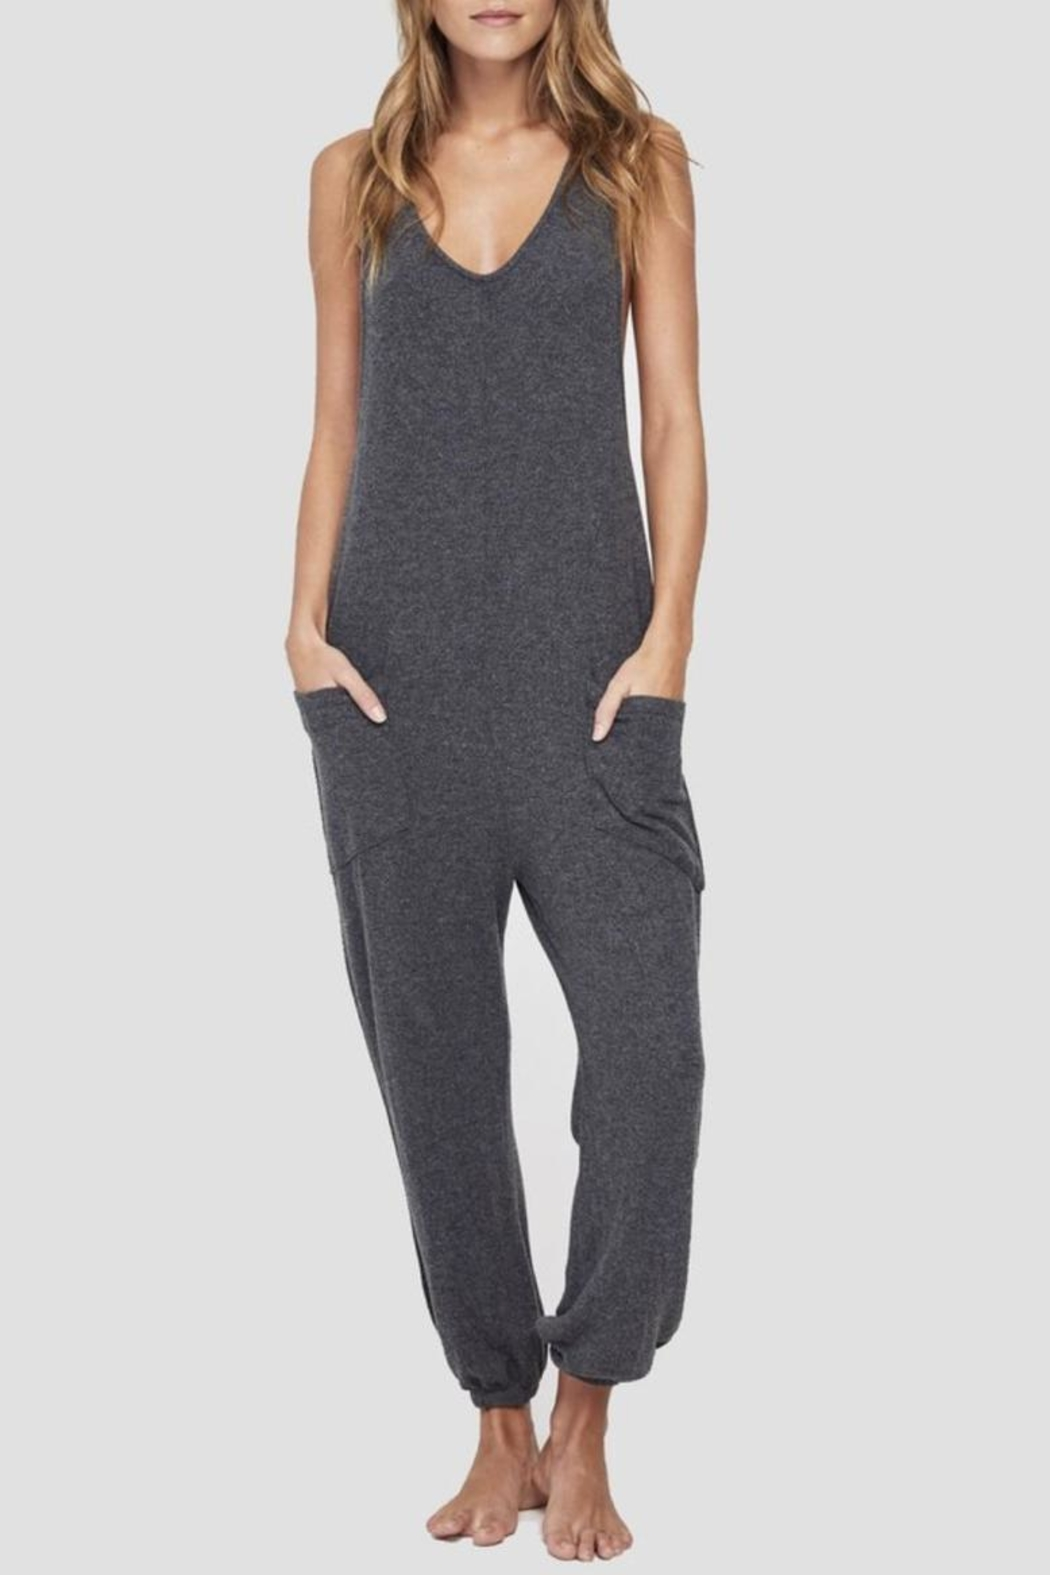 3b33967ca5a SPIRITUAL GANGSTER Hacci Jumpsuit from Hudson Valley by Bfree ...